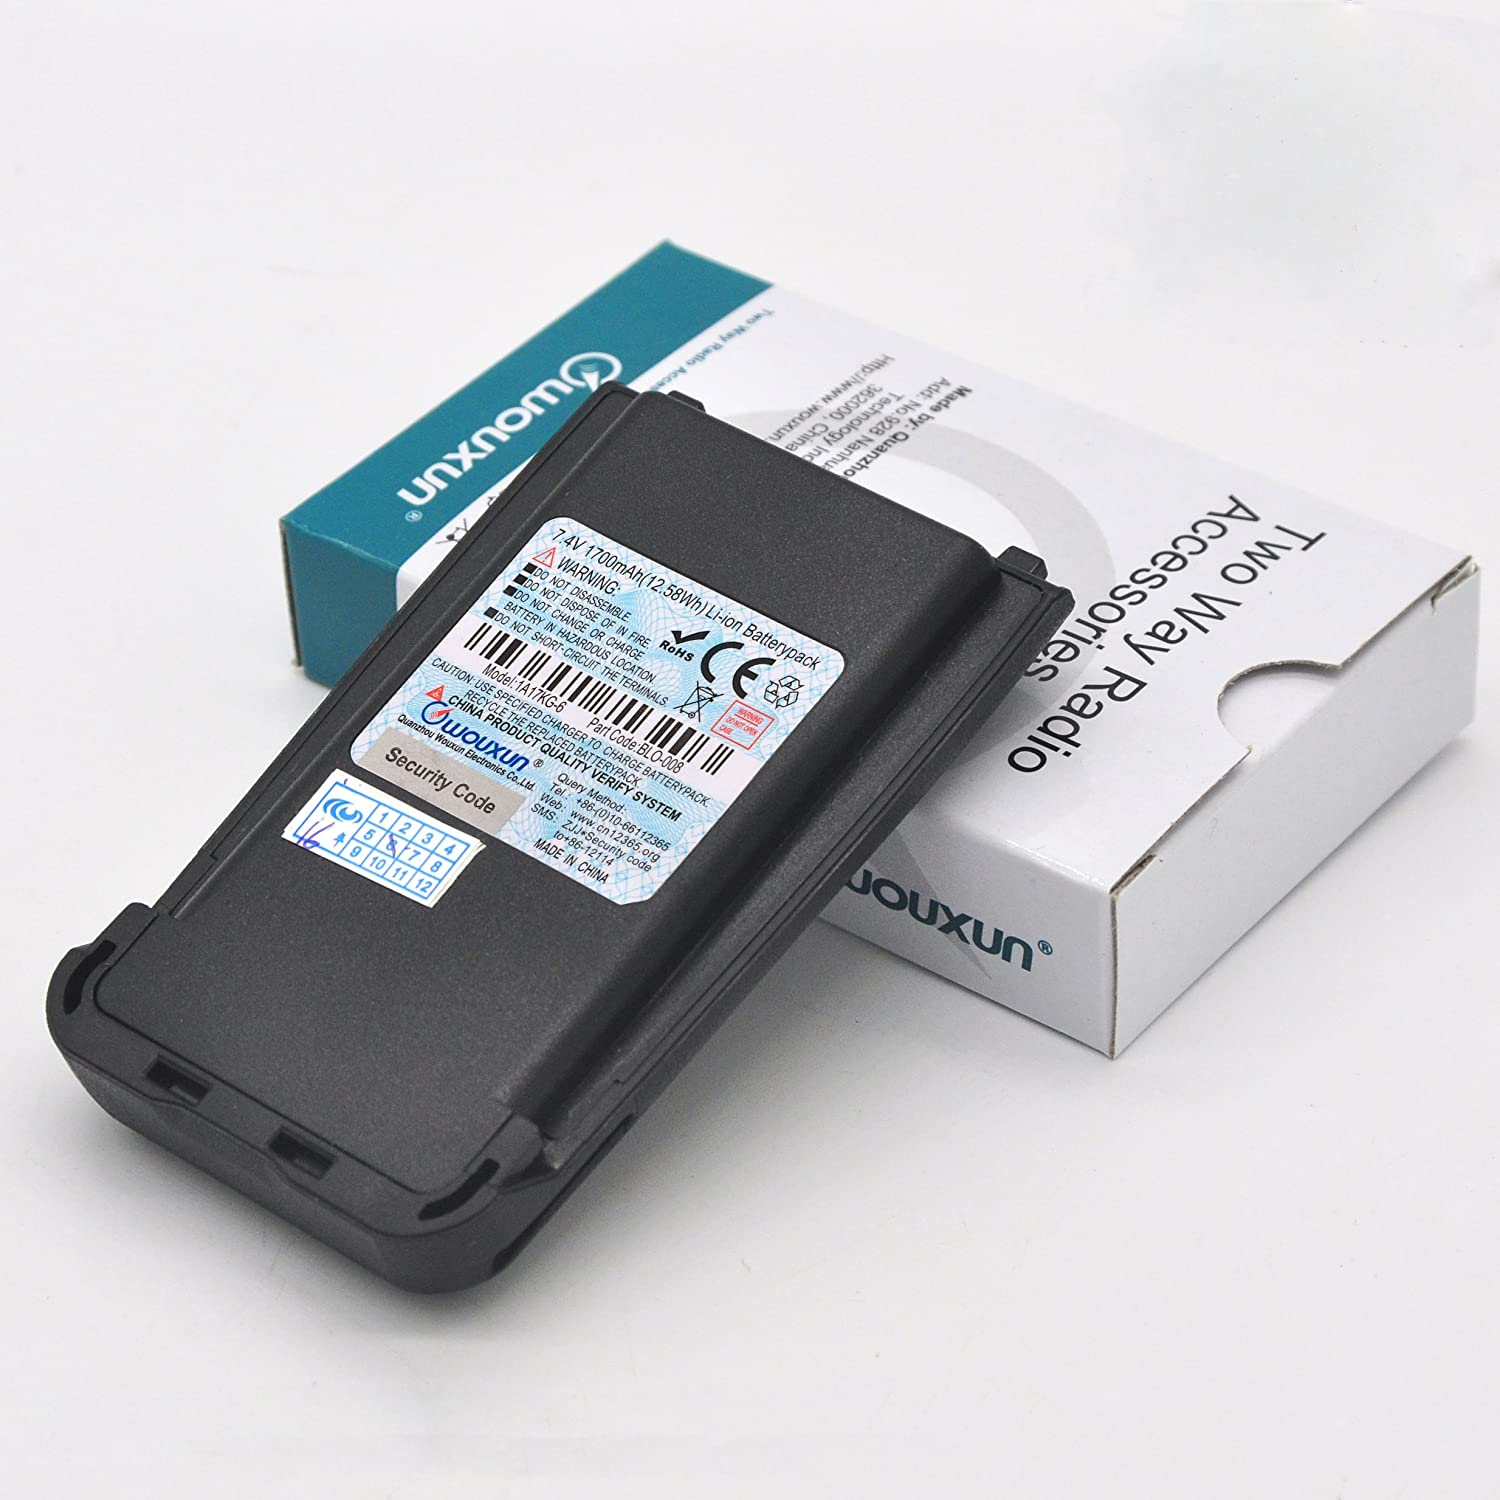 Wouxun Blo 008 1700 mAh Lithium Ion Battery Pack for: Amazon co uk